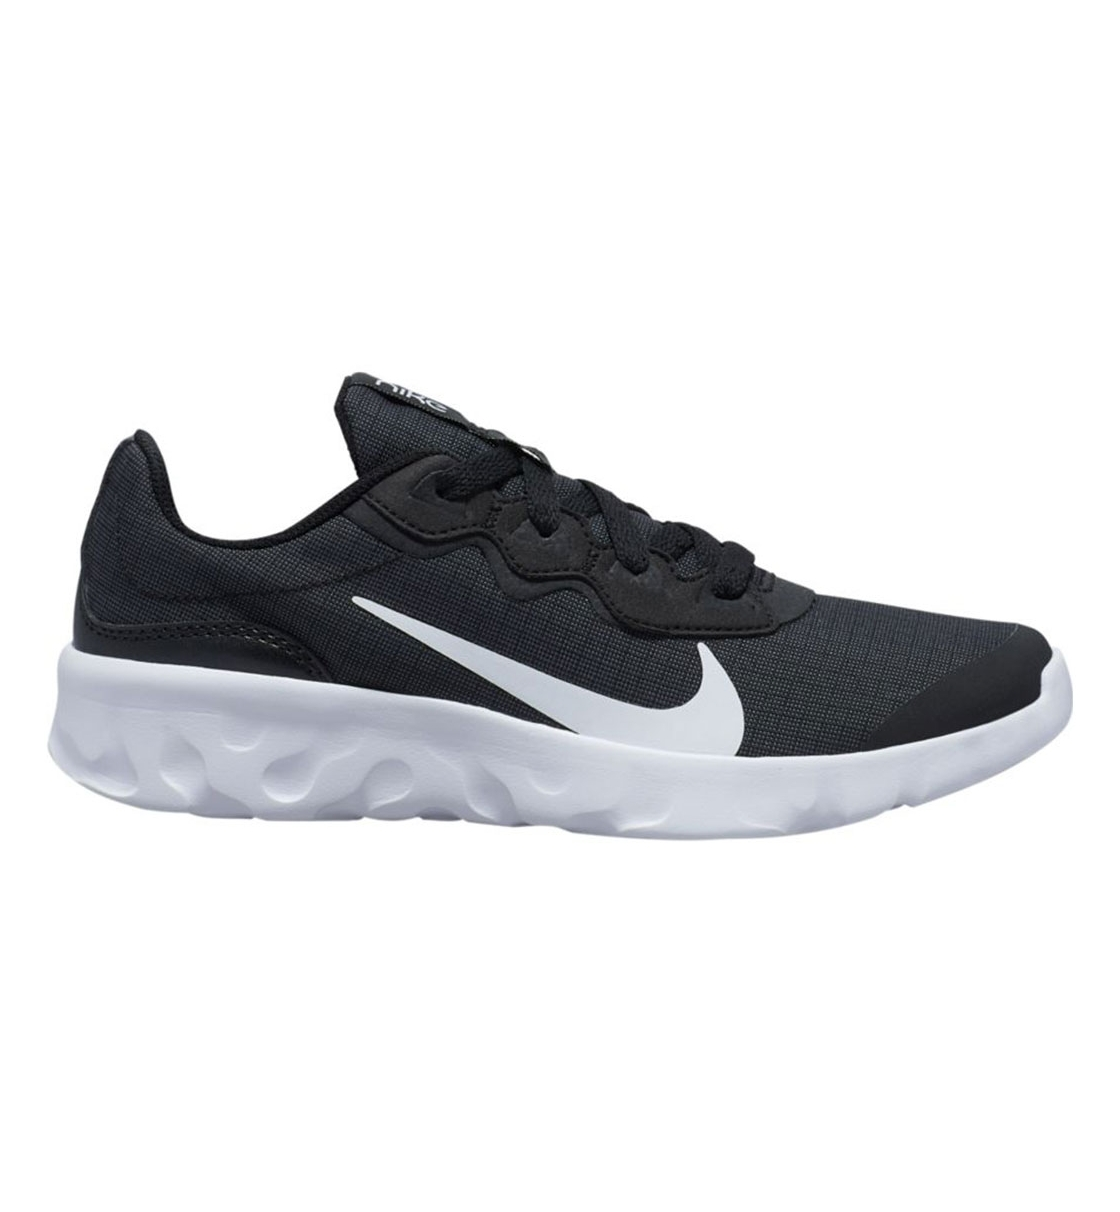 Nike Εφηβικό Παπούτσι Running Ss20 Nike Explore Strada (Gs) CD9017